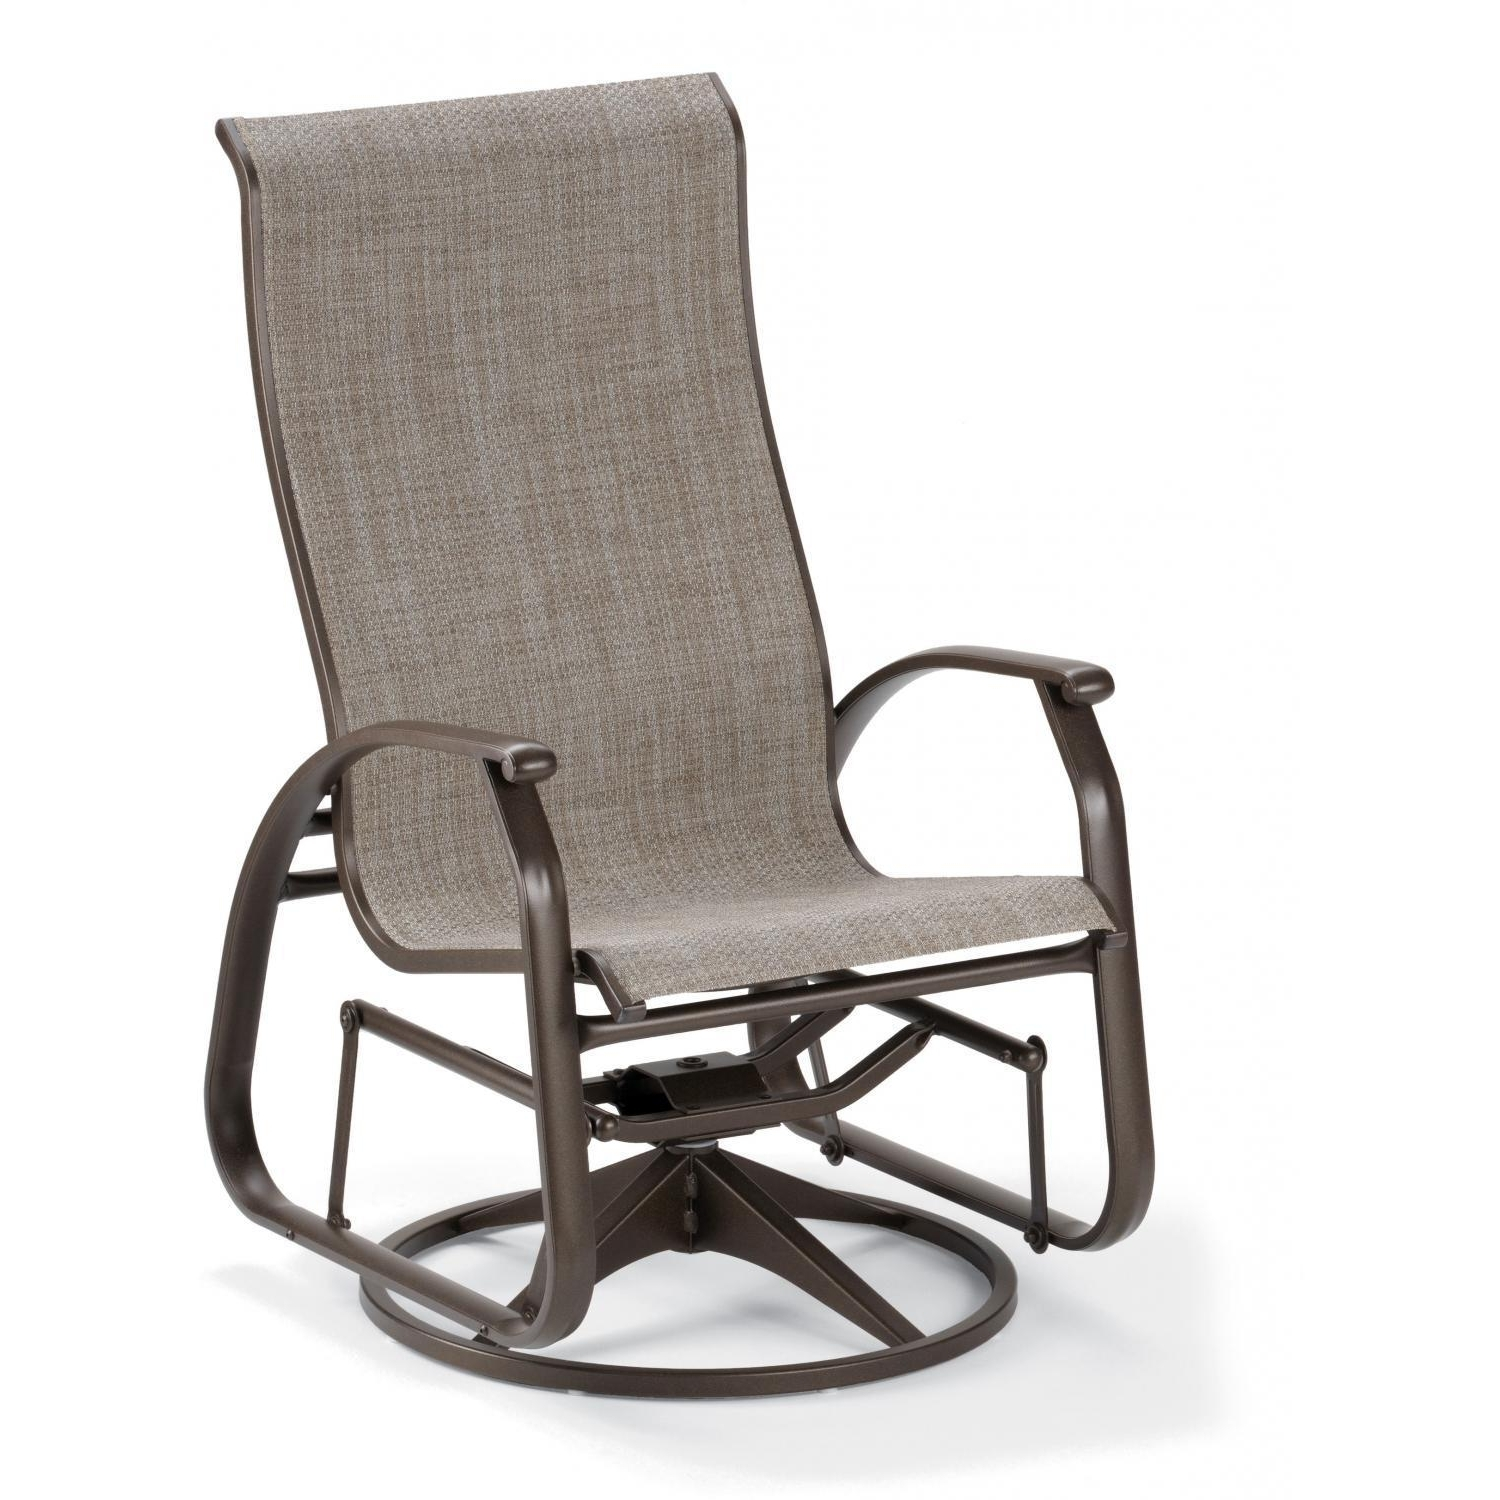 Patio Sling Rocking Chairs Pertaining To Trendy Telescope Casual Cape May Sling Patio Supreme Swivel Glider Dining (View 5 of 15)